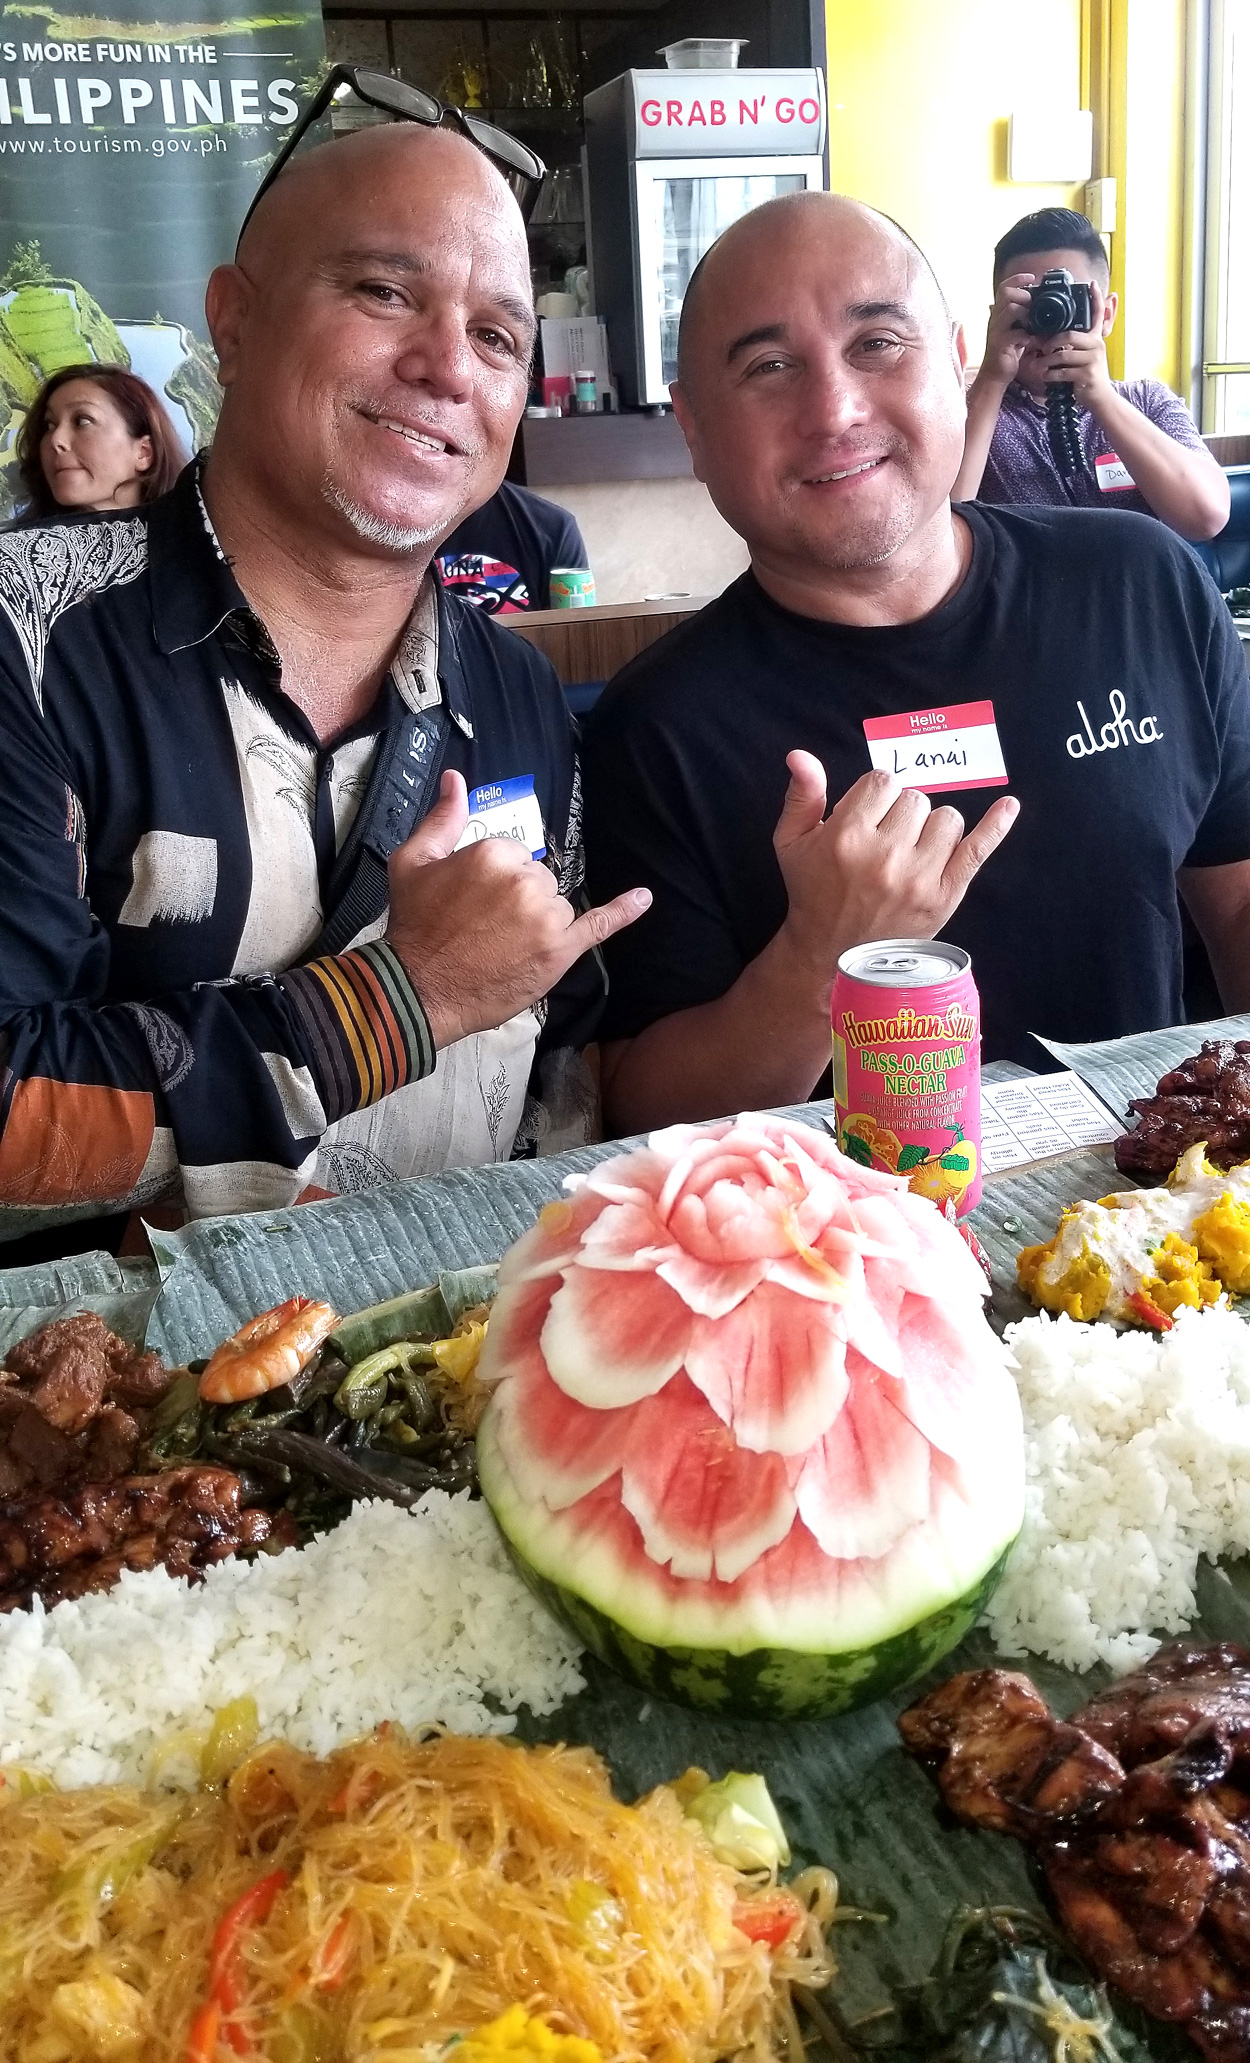 Pomai and Lanai at the Kamayan Lunch